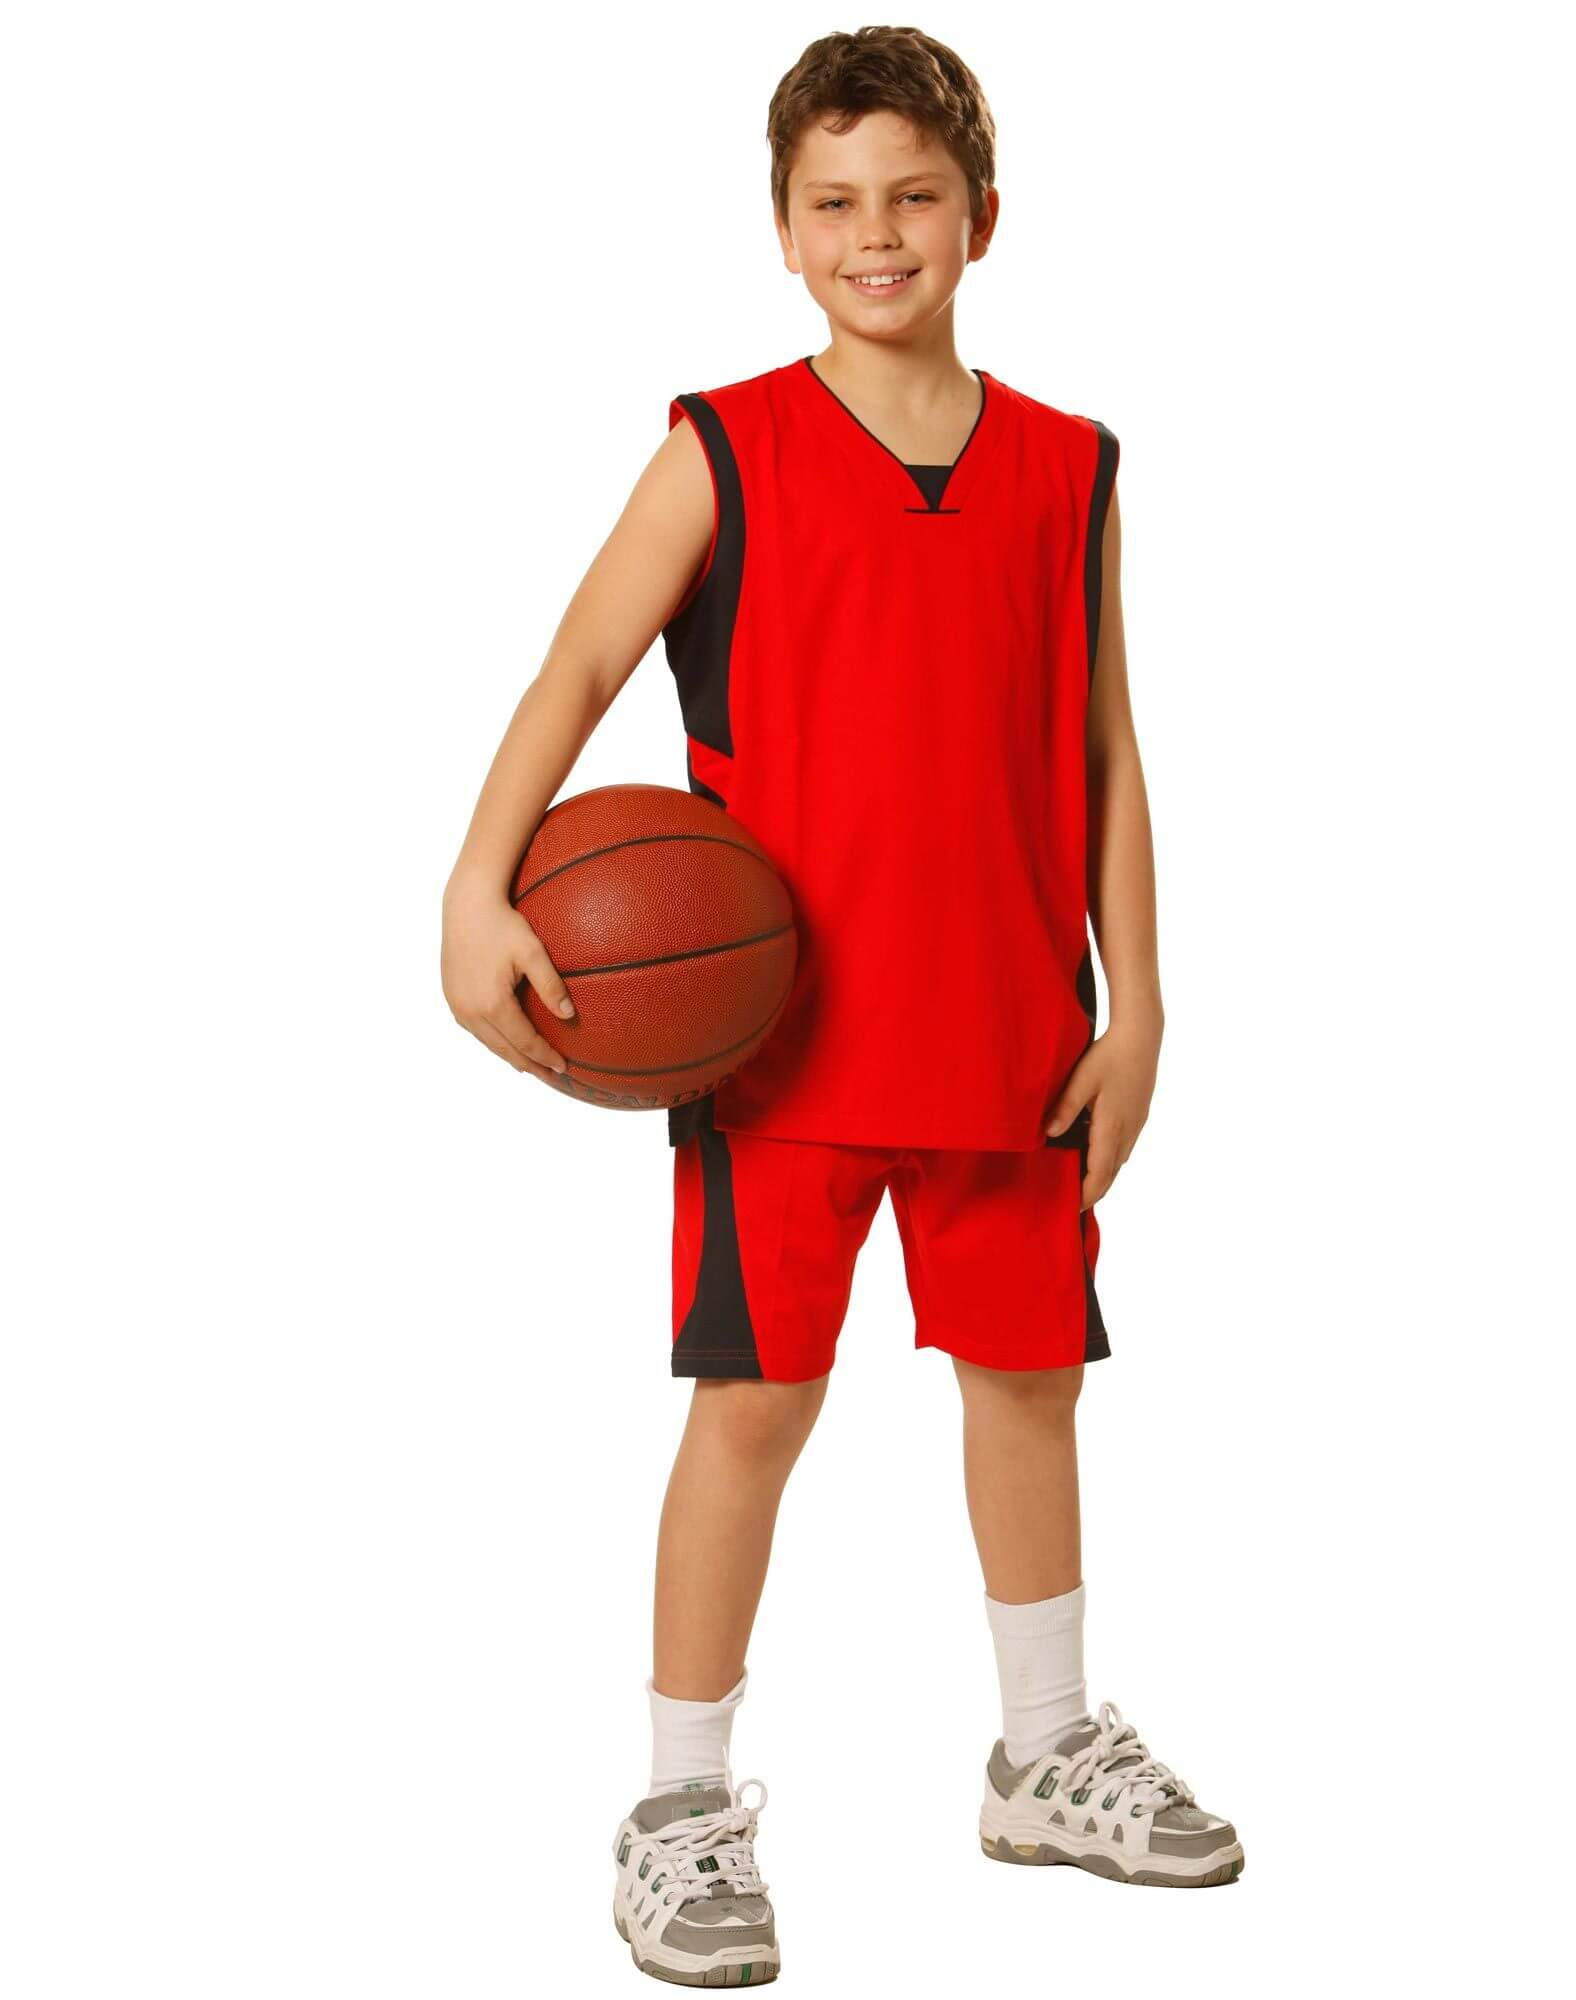 Kids Basketball Jerseys Manufacturers in Czech-republic